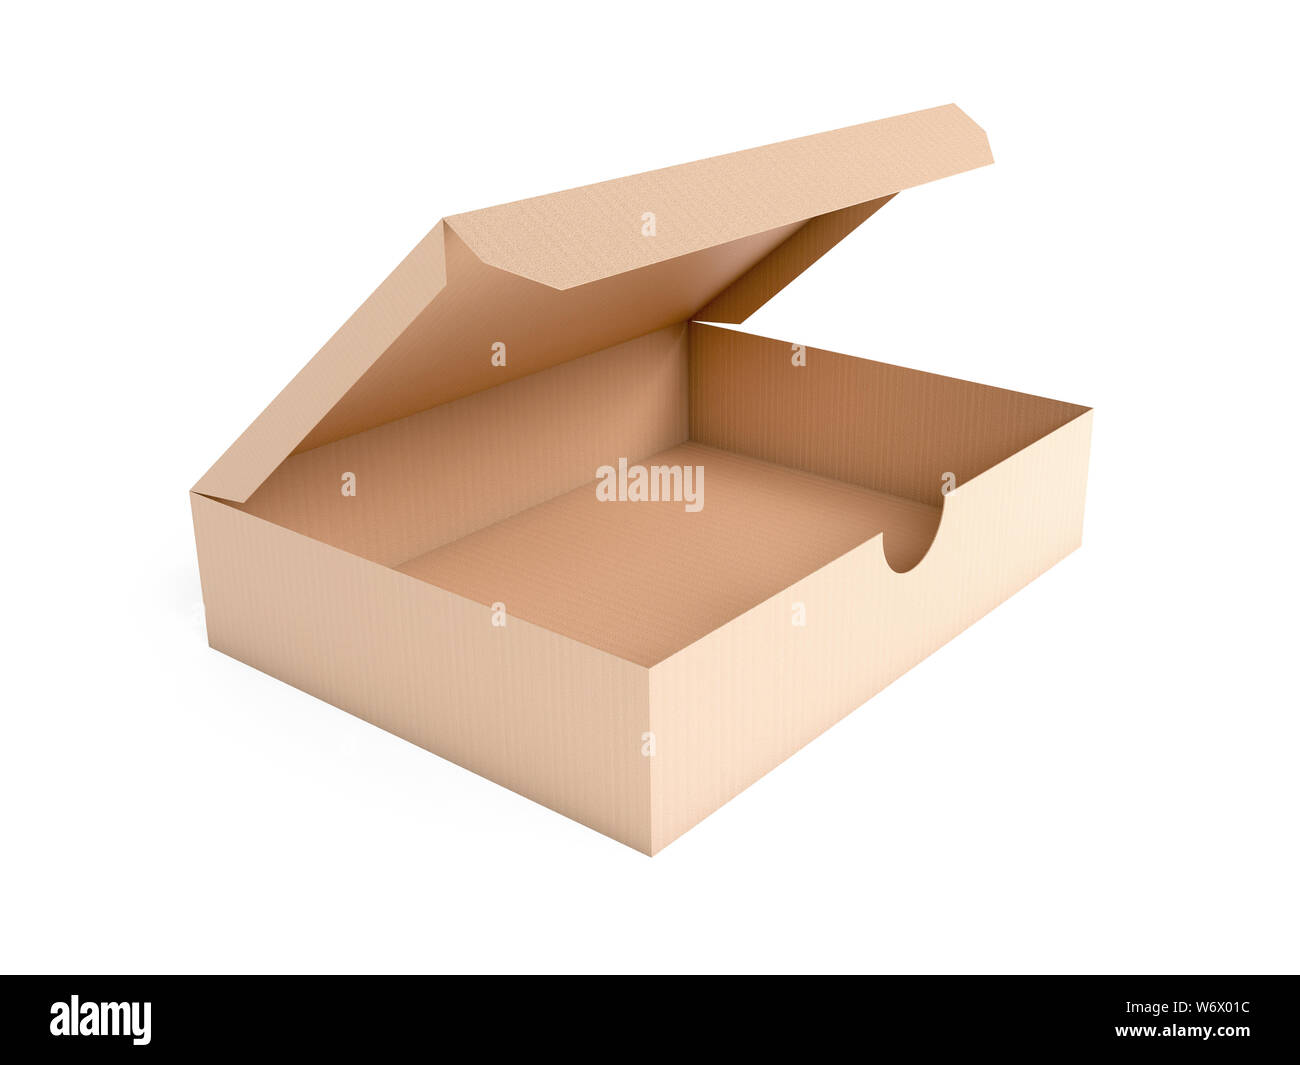 Flat brown paper box. Open carton. 3d rendering illustration isolated on white background Stock Photo